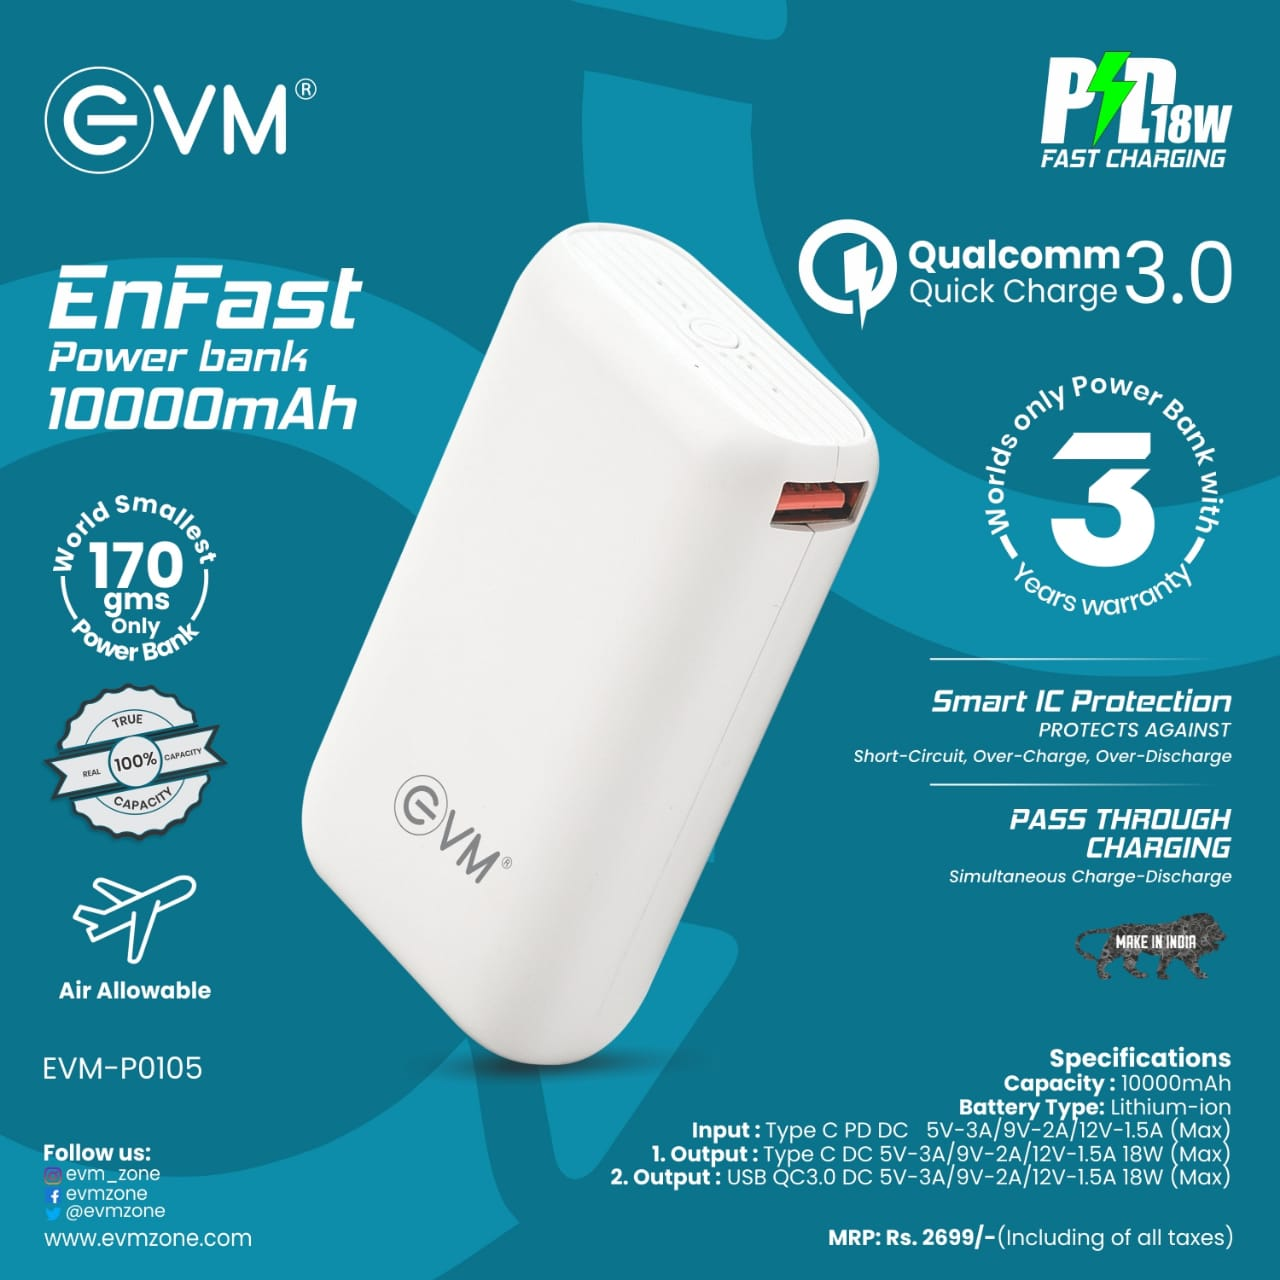 EVM Launches 100% Locally-made Compact 10,000mAh Powerbank with QC 3.0 & 3-years Warranty